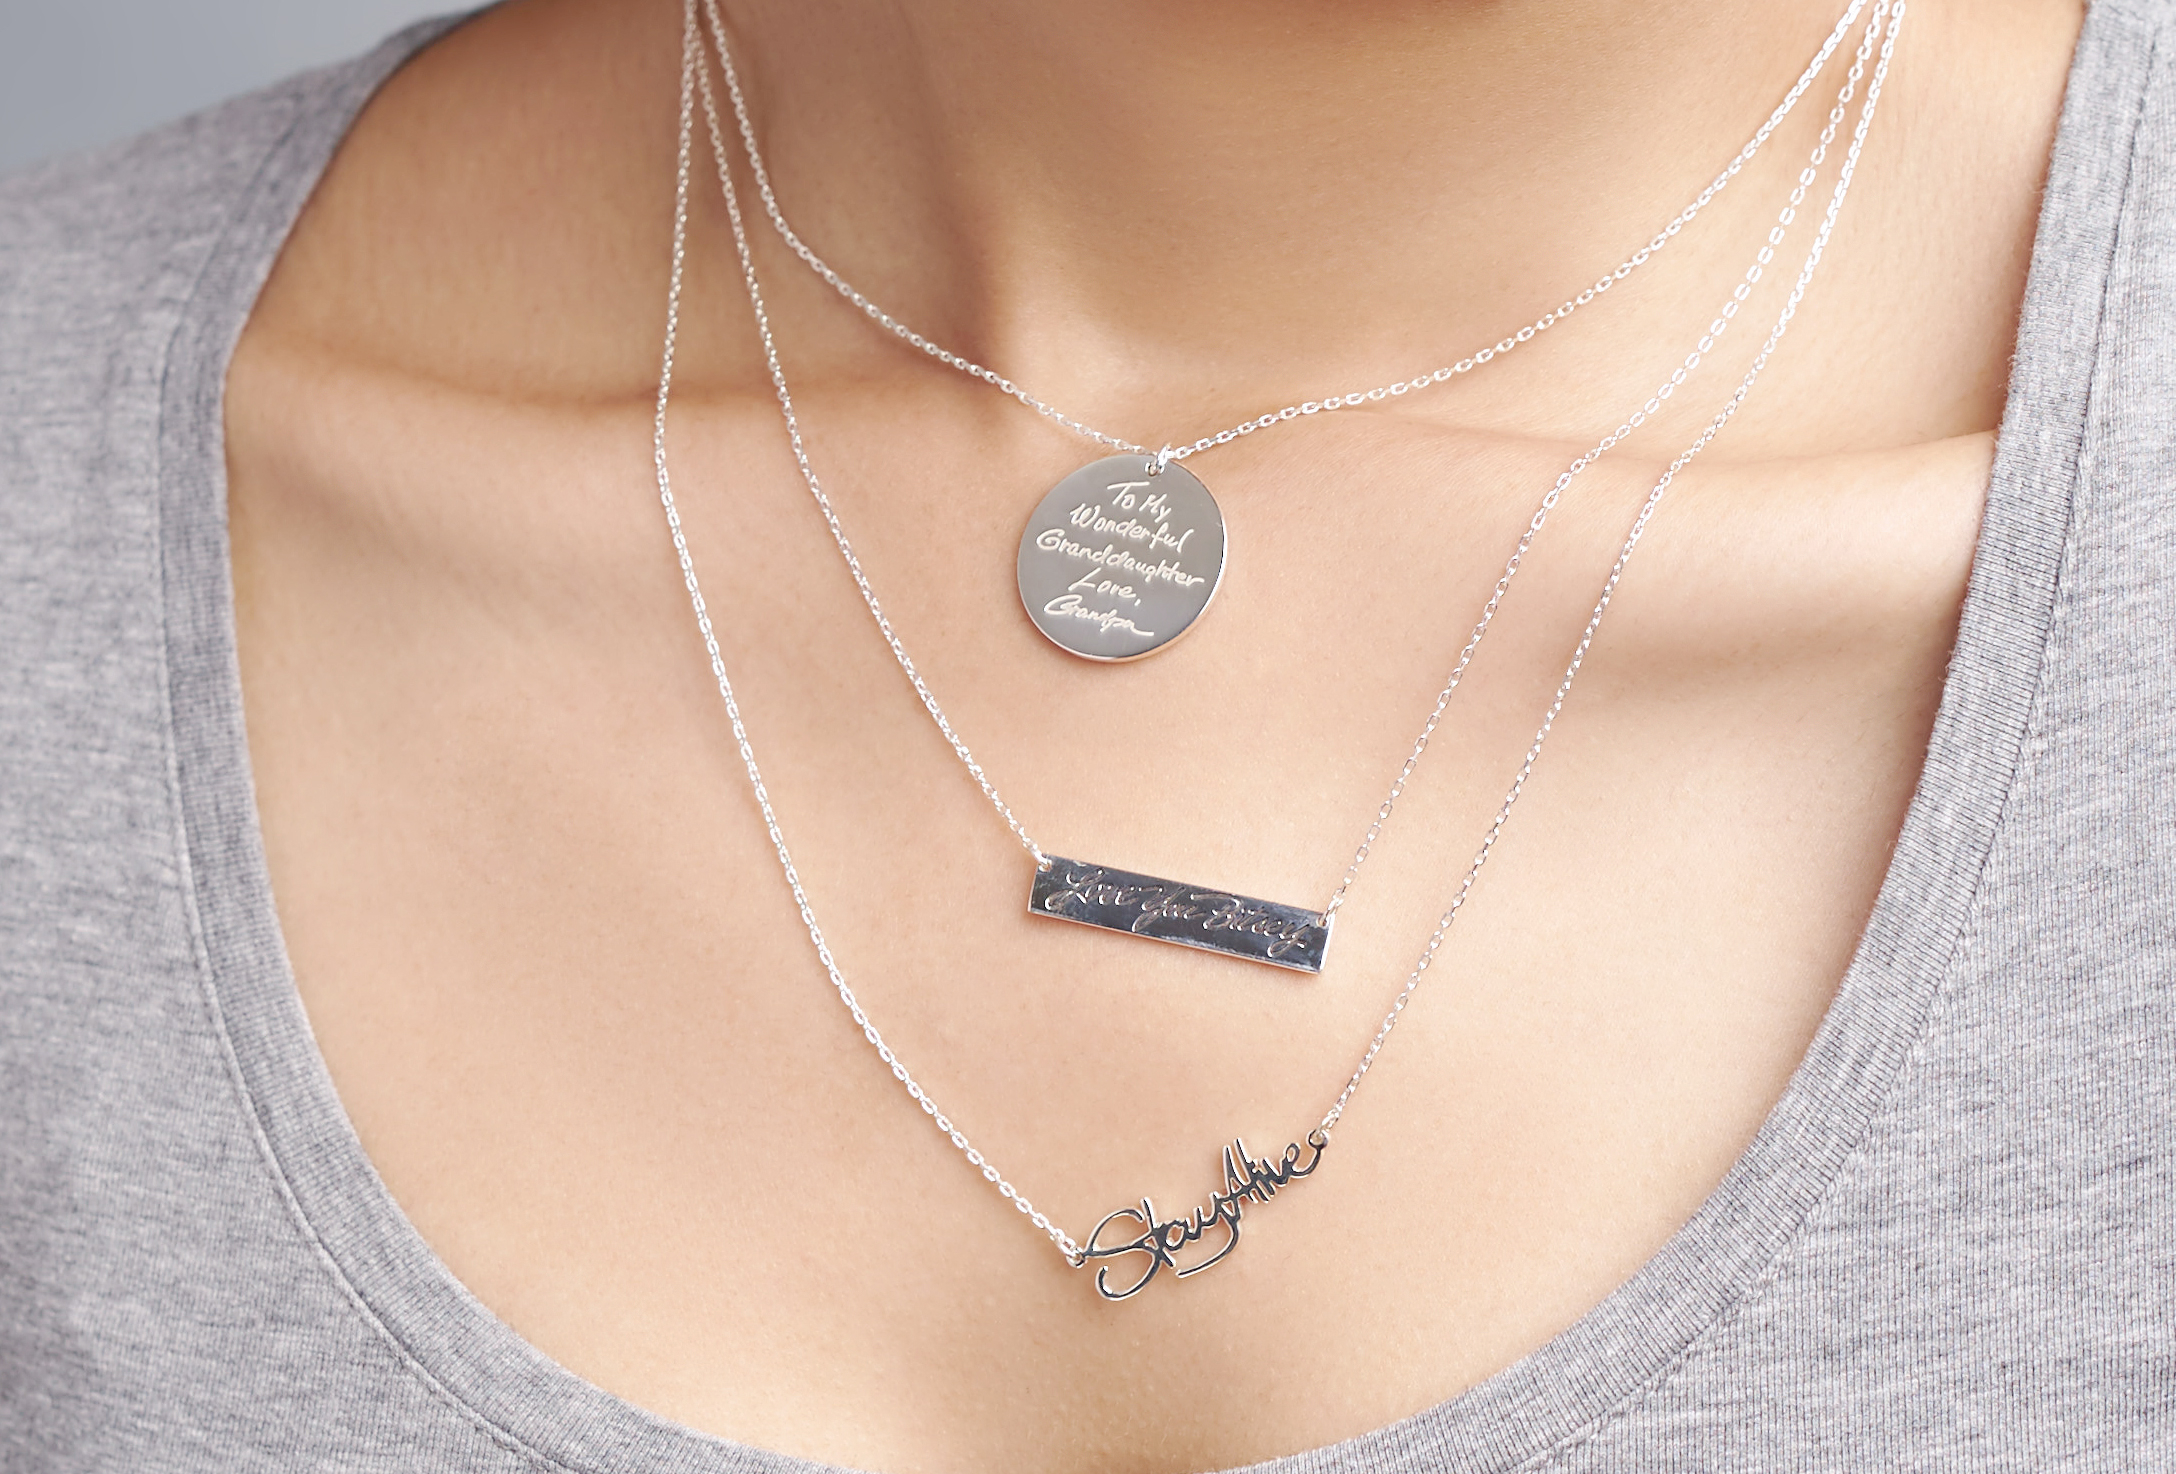 Necklace Length Diagram Necklace Length Guide How To Measure Choose The Right Necklace